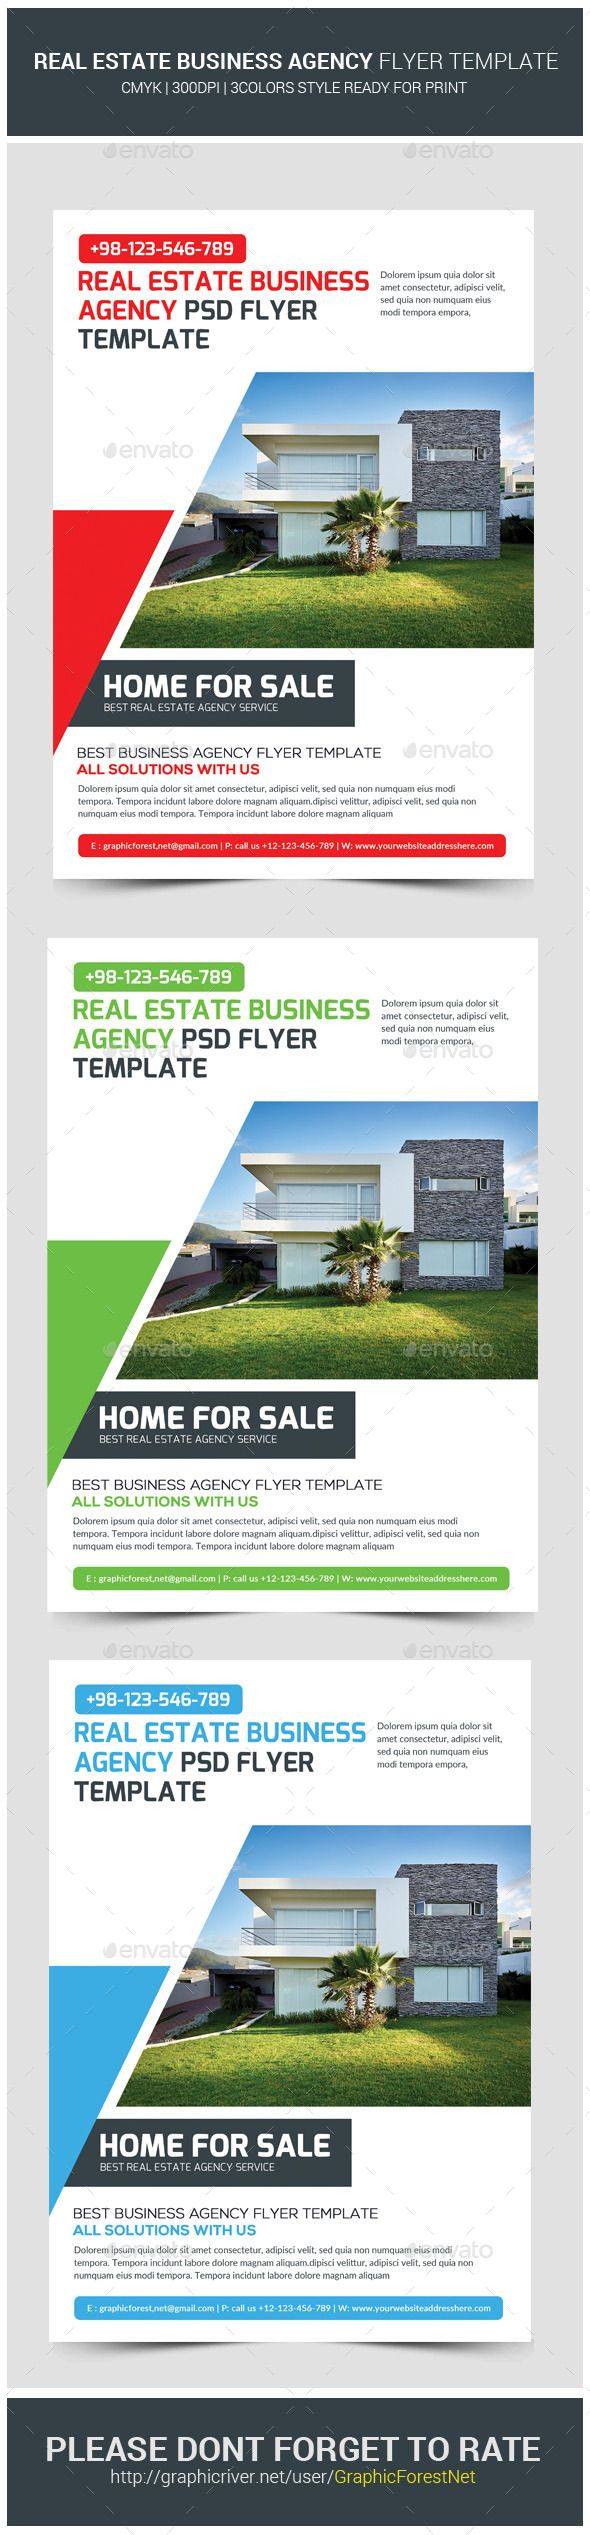 #Real #Estate Agency Business Flyer #Template - #Corporate #Flyers Download here: https://graphicriver.net/item/real-estate-agency-business-flyer-template/11394487?ref=alena994